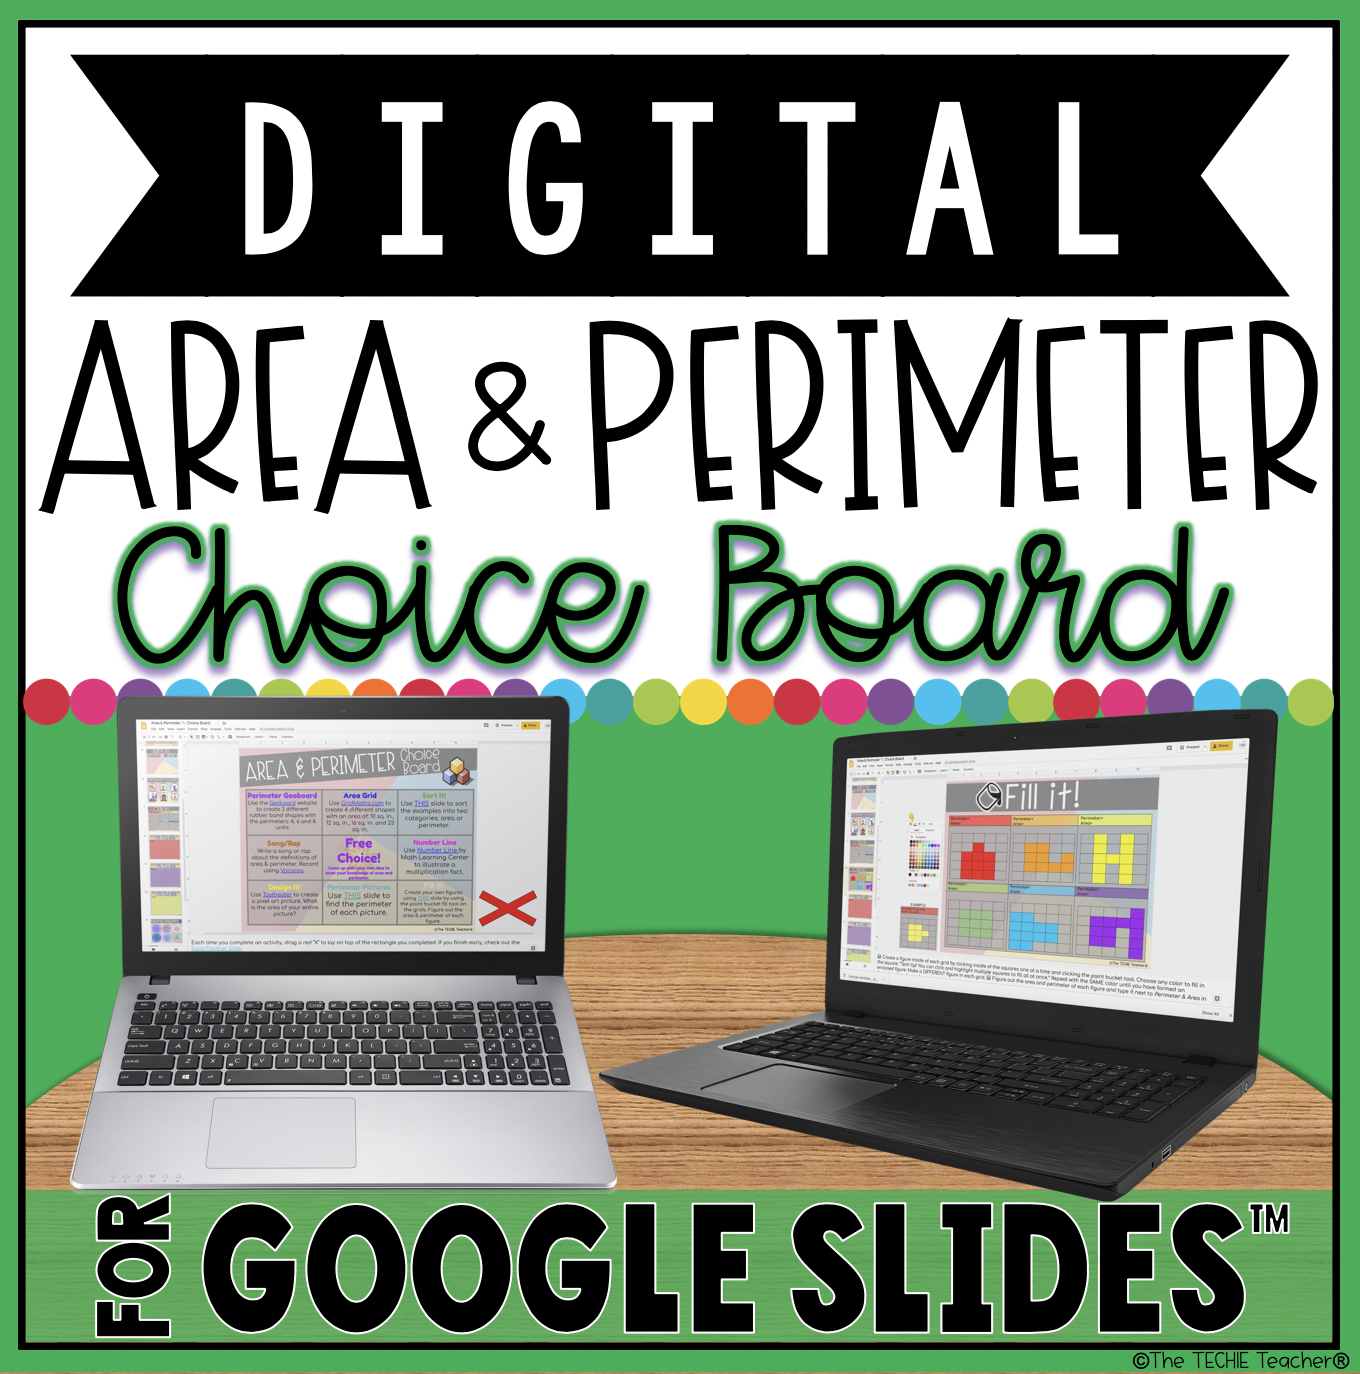 Digital Area and Perimeter Choice Board